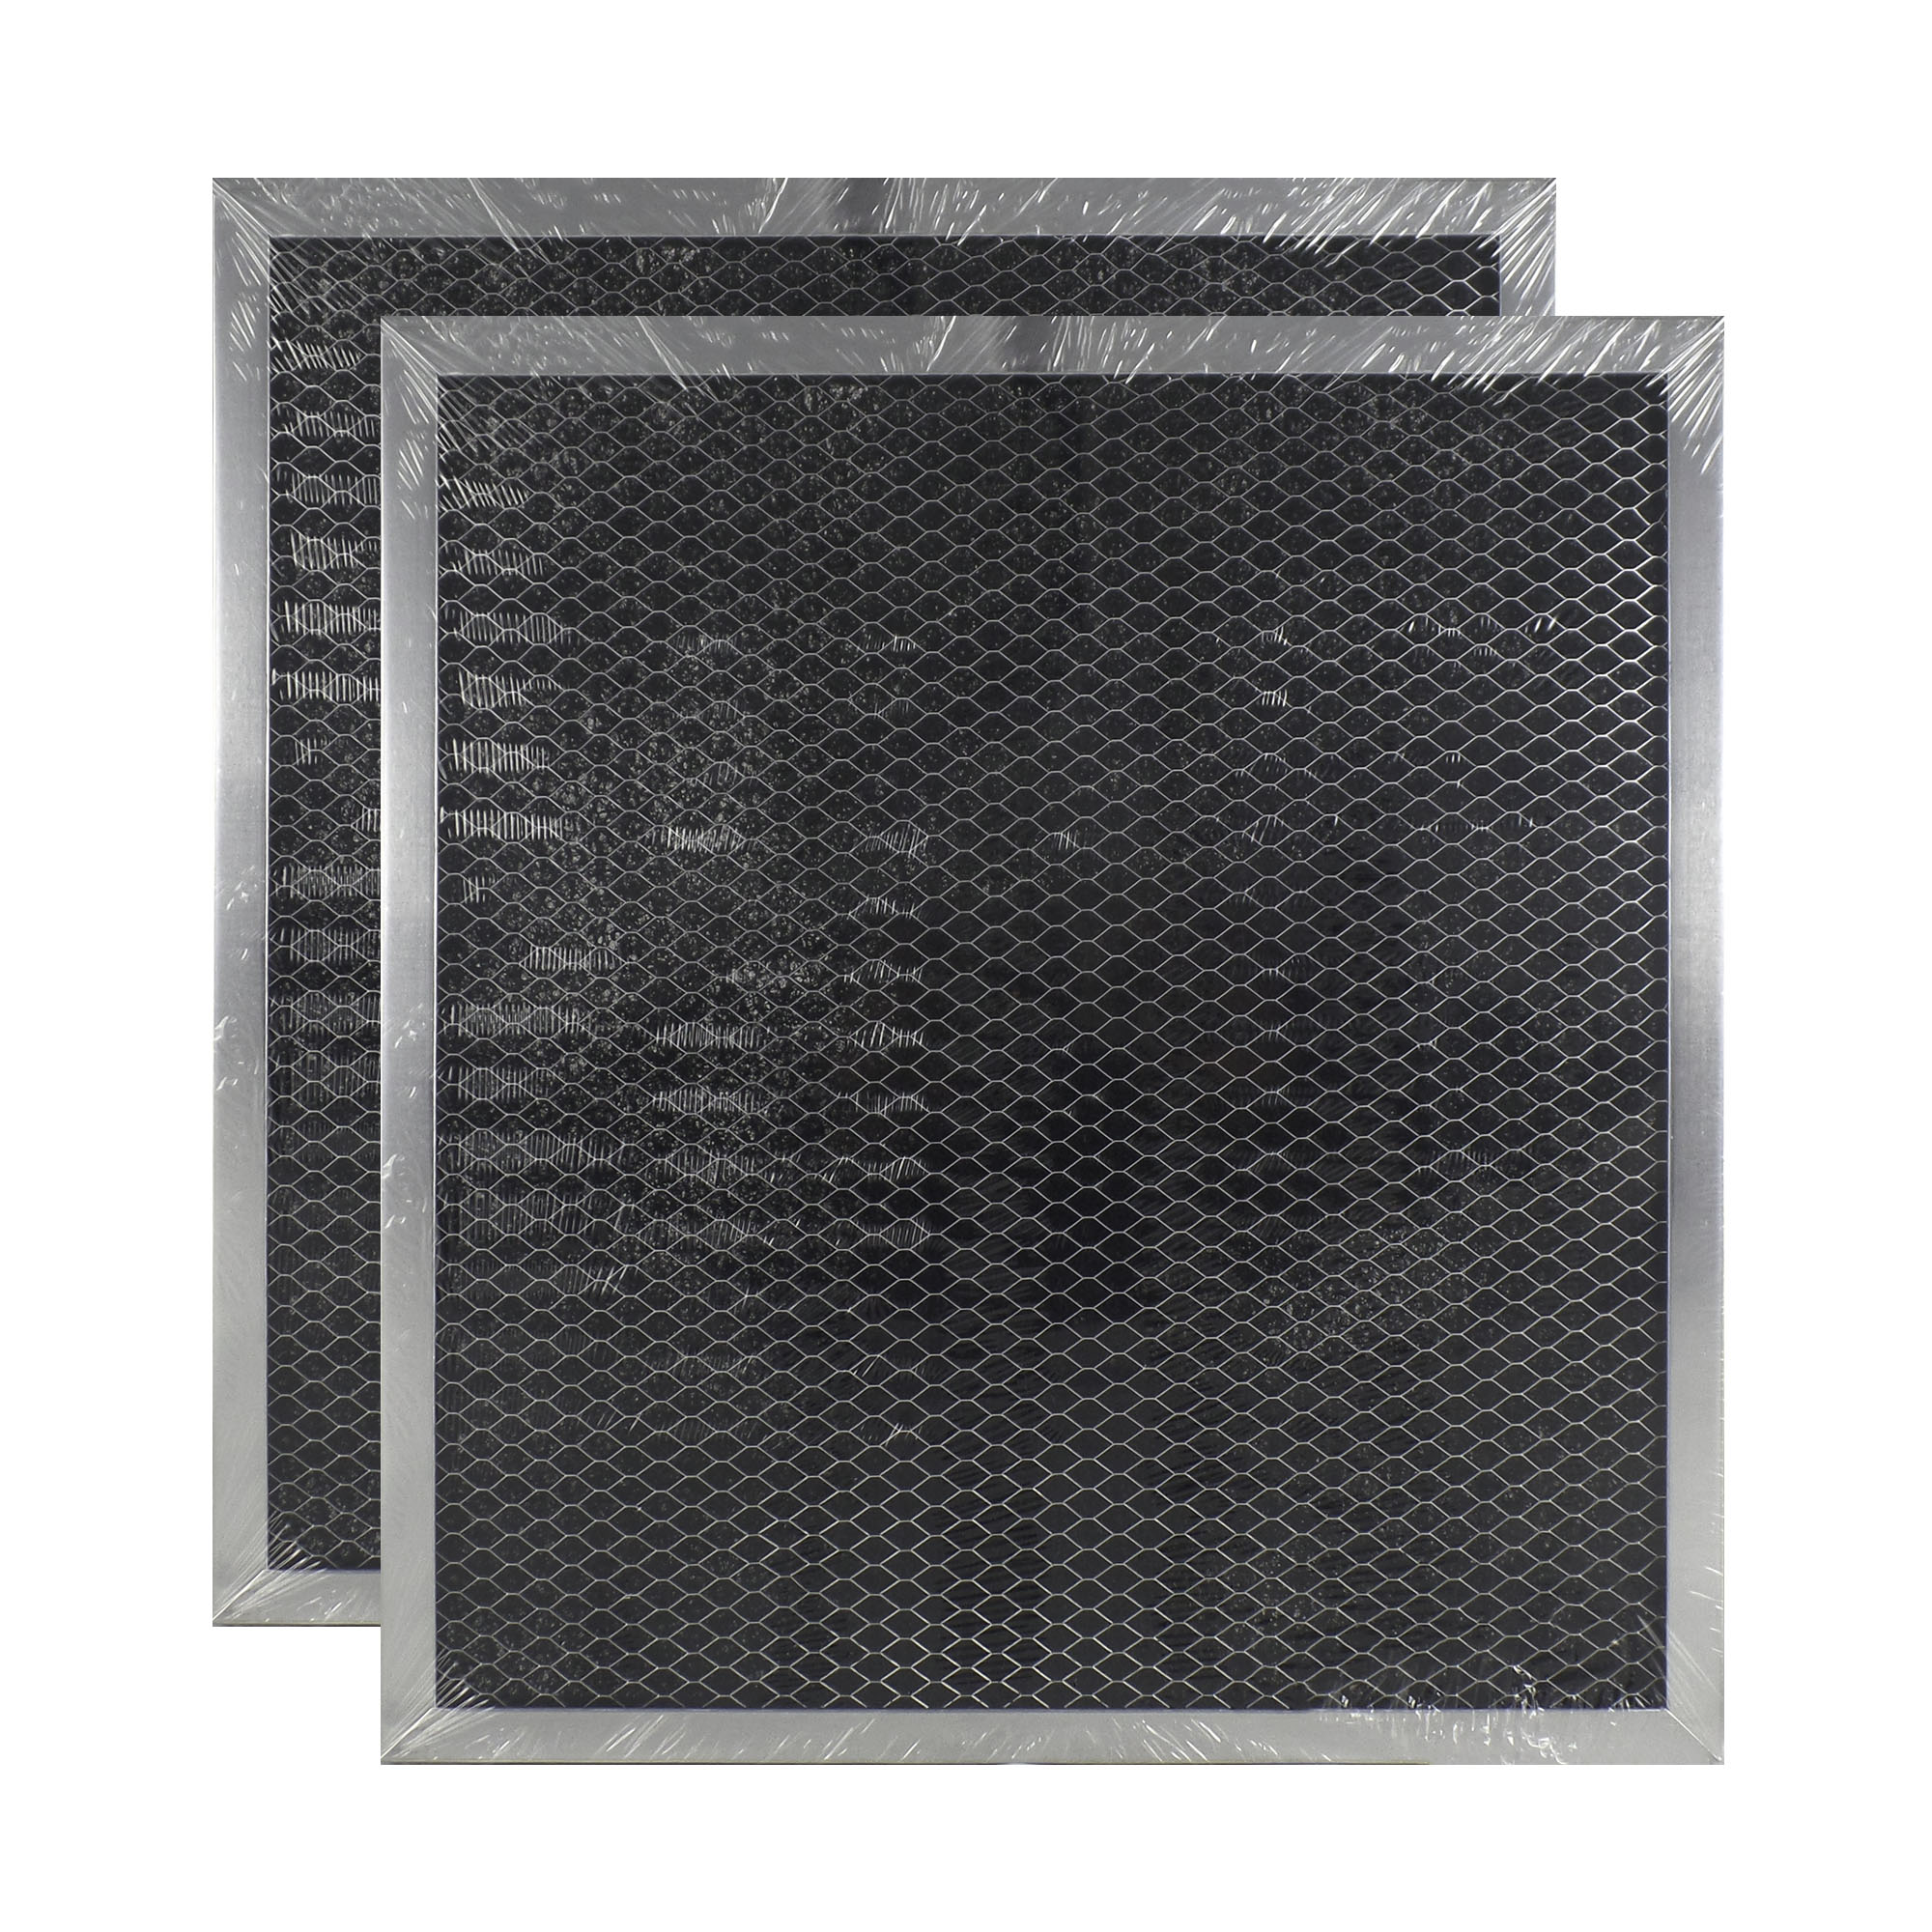 2 PACK 251596 GE Microwave Charcoal Carbon Filter Replacements by Air Filter ...